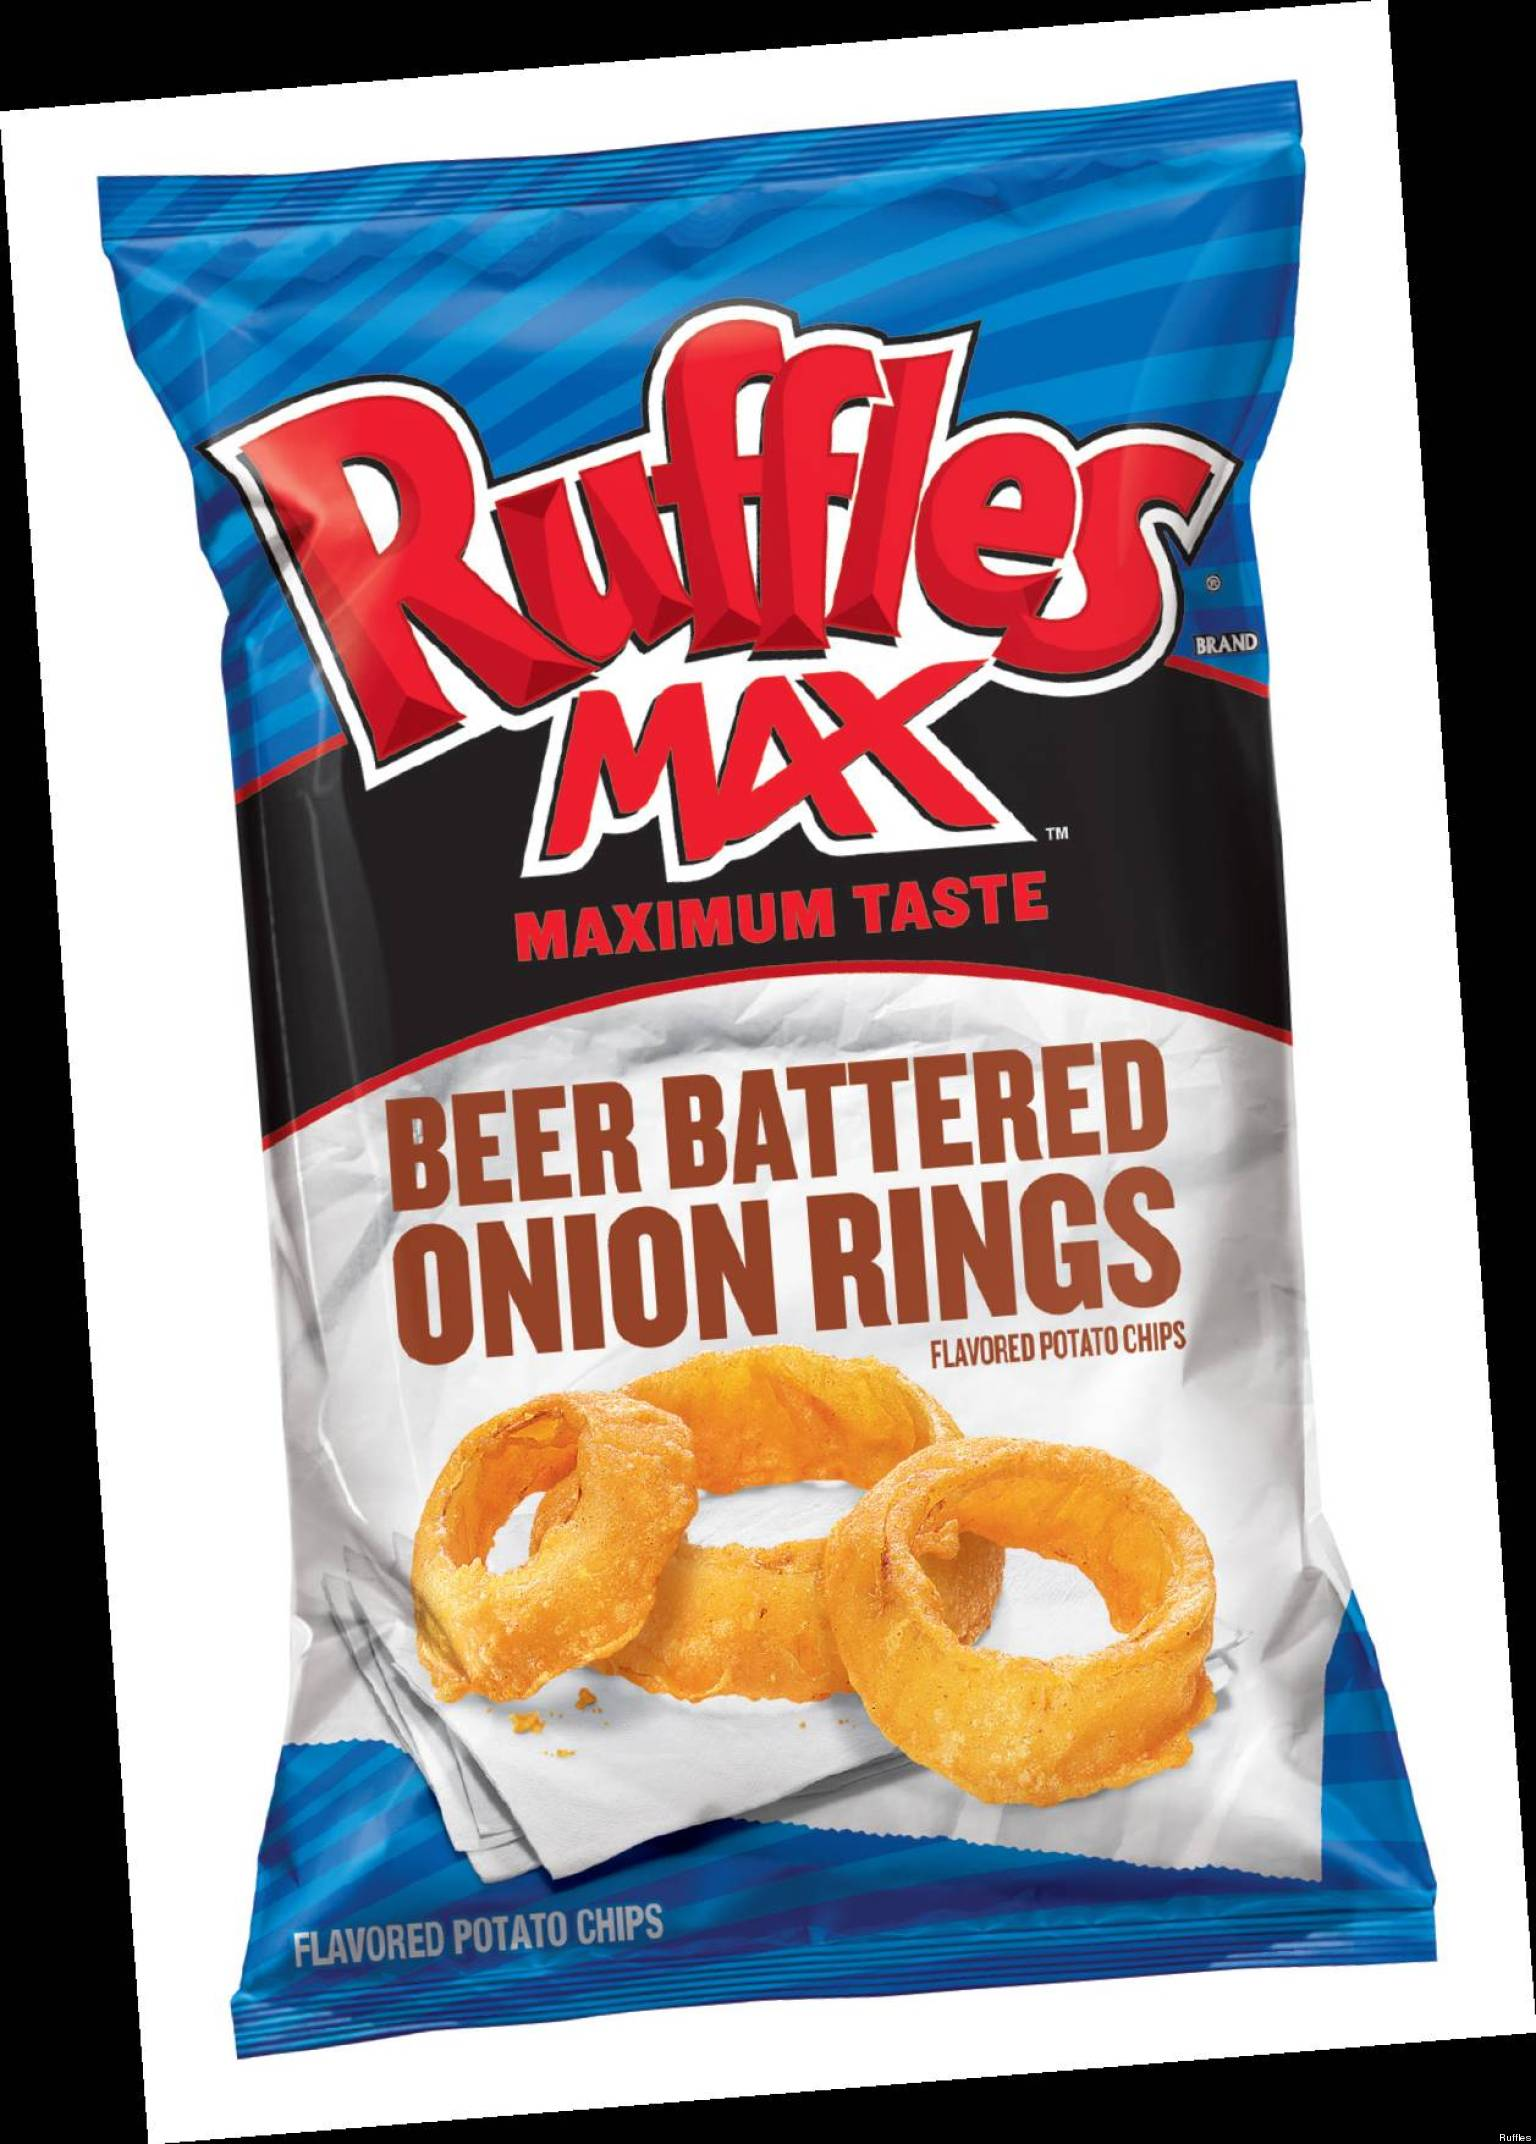 Ruffles MAX Debuts Beer Battered Onion Rings Potato Chips | HuffPost